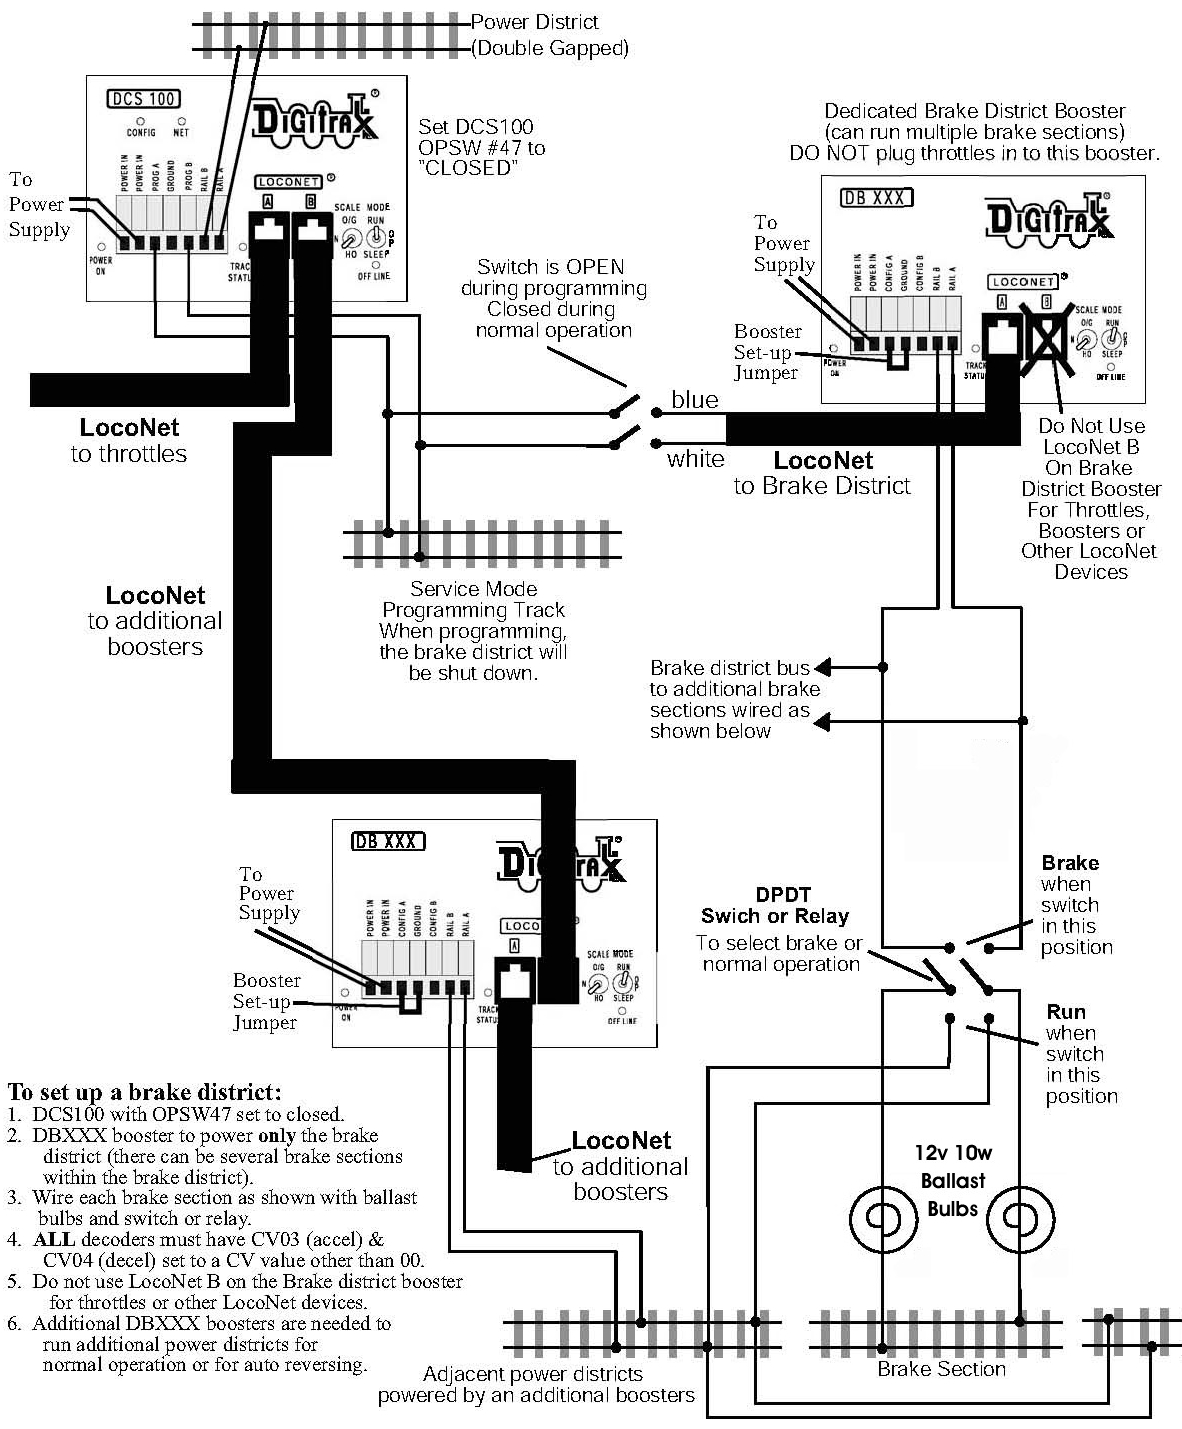 DIGITRAX WIRING SCHEMATIC FOR